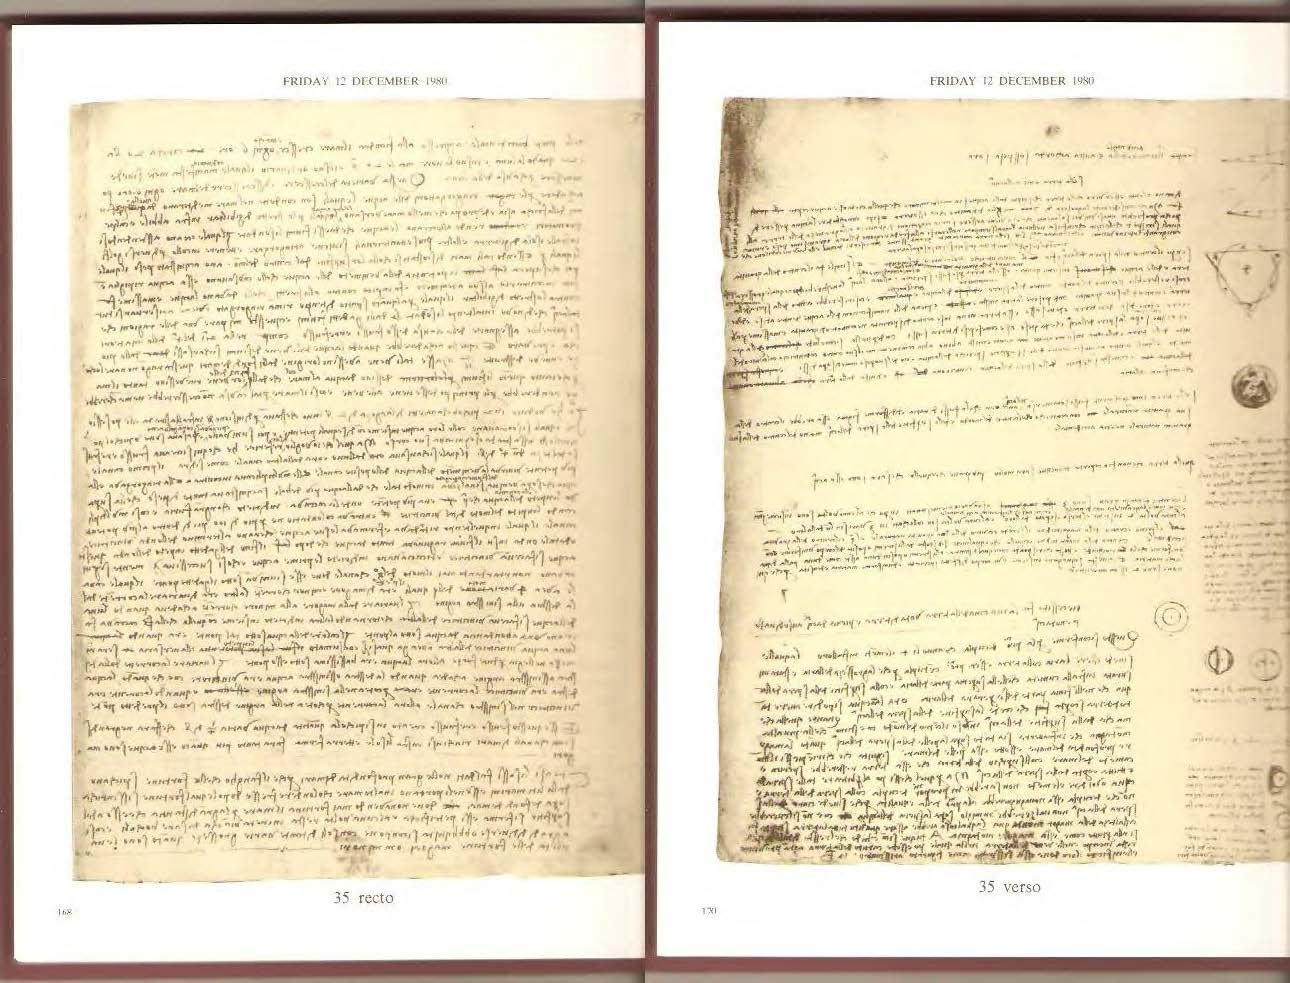 Codex_Leicester_Page_35_Image_0001.jpg